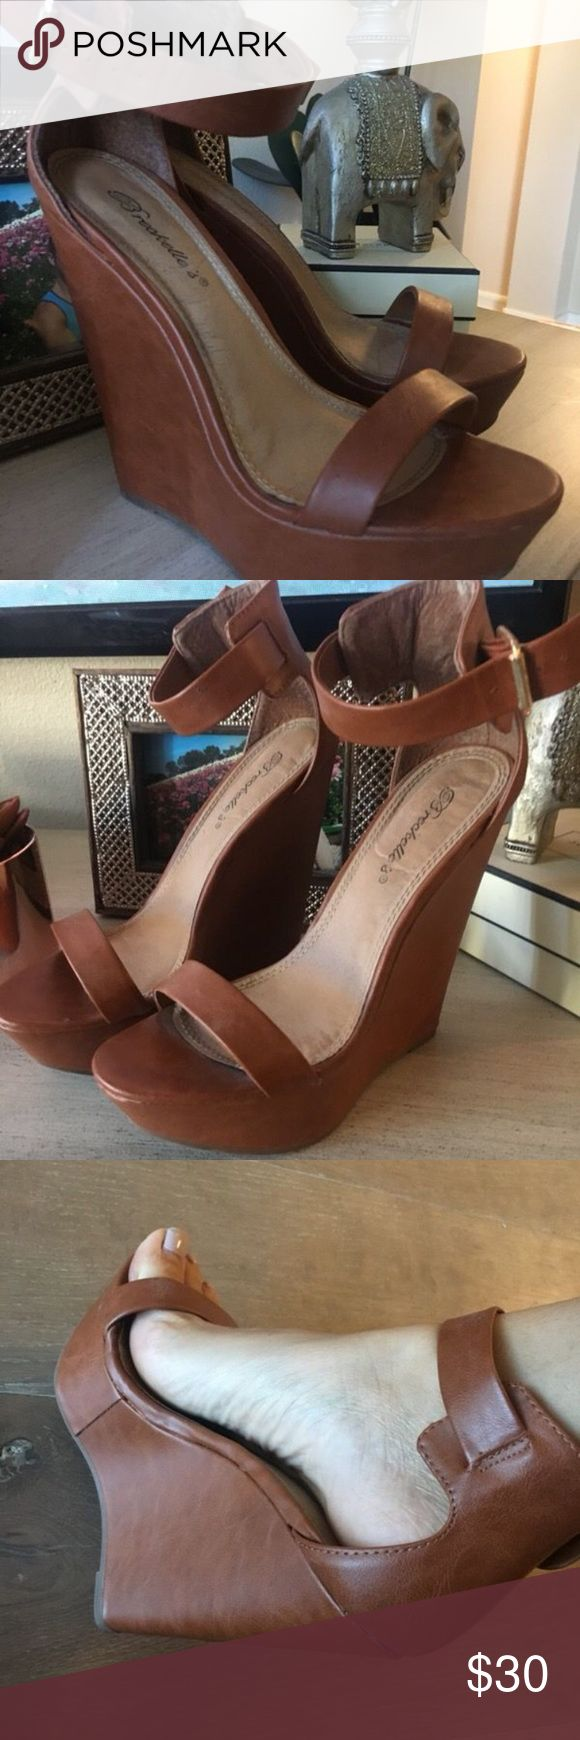 "Women's Tan Wedge Sandals. Size 7.5 From Nordstroms, SUPER LIGHT! These shoes are comfortable, although they are a high wedge they are not heavy!  I only wore them a few times as I grew out of my ""wedge"" phase but i feel like they are making a comeback!  Even though I only wore them once or twice i am lowering the price bc they are 4 years old! oldie but a goodie !! 💗 Nordstrom Shoes Wedges"